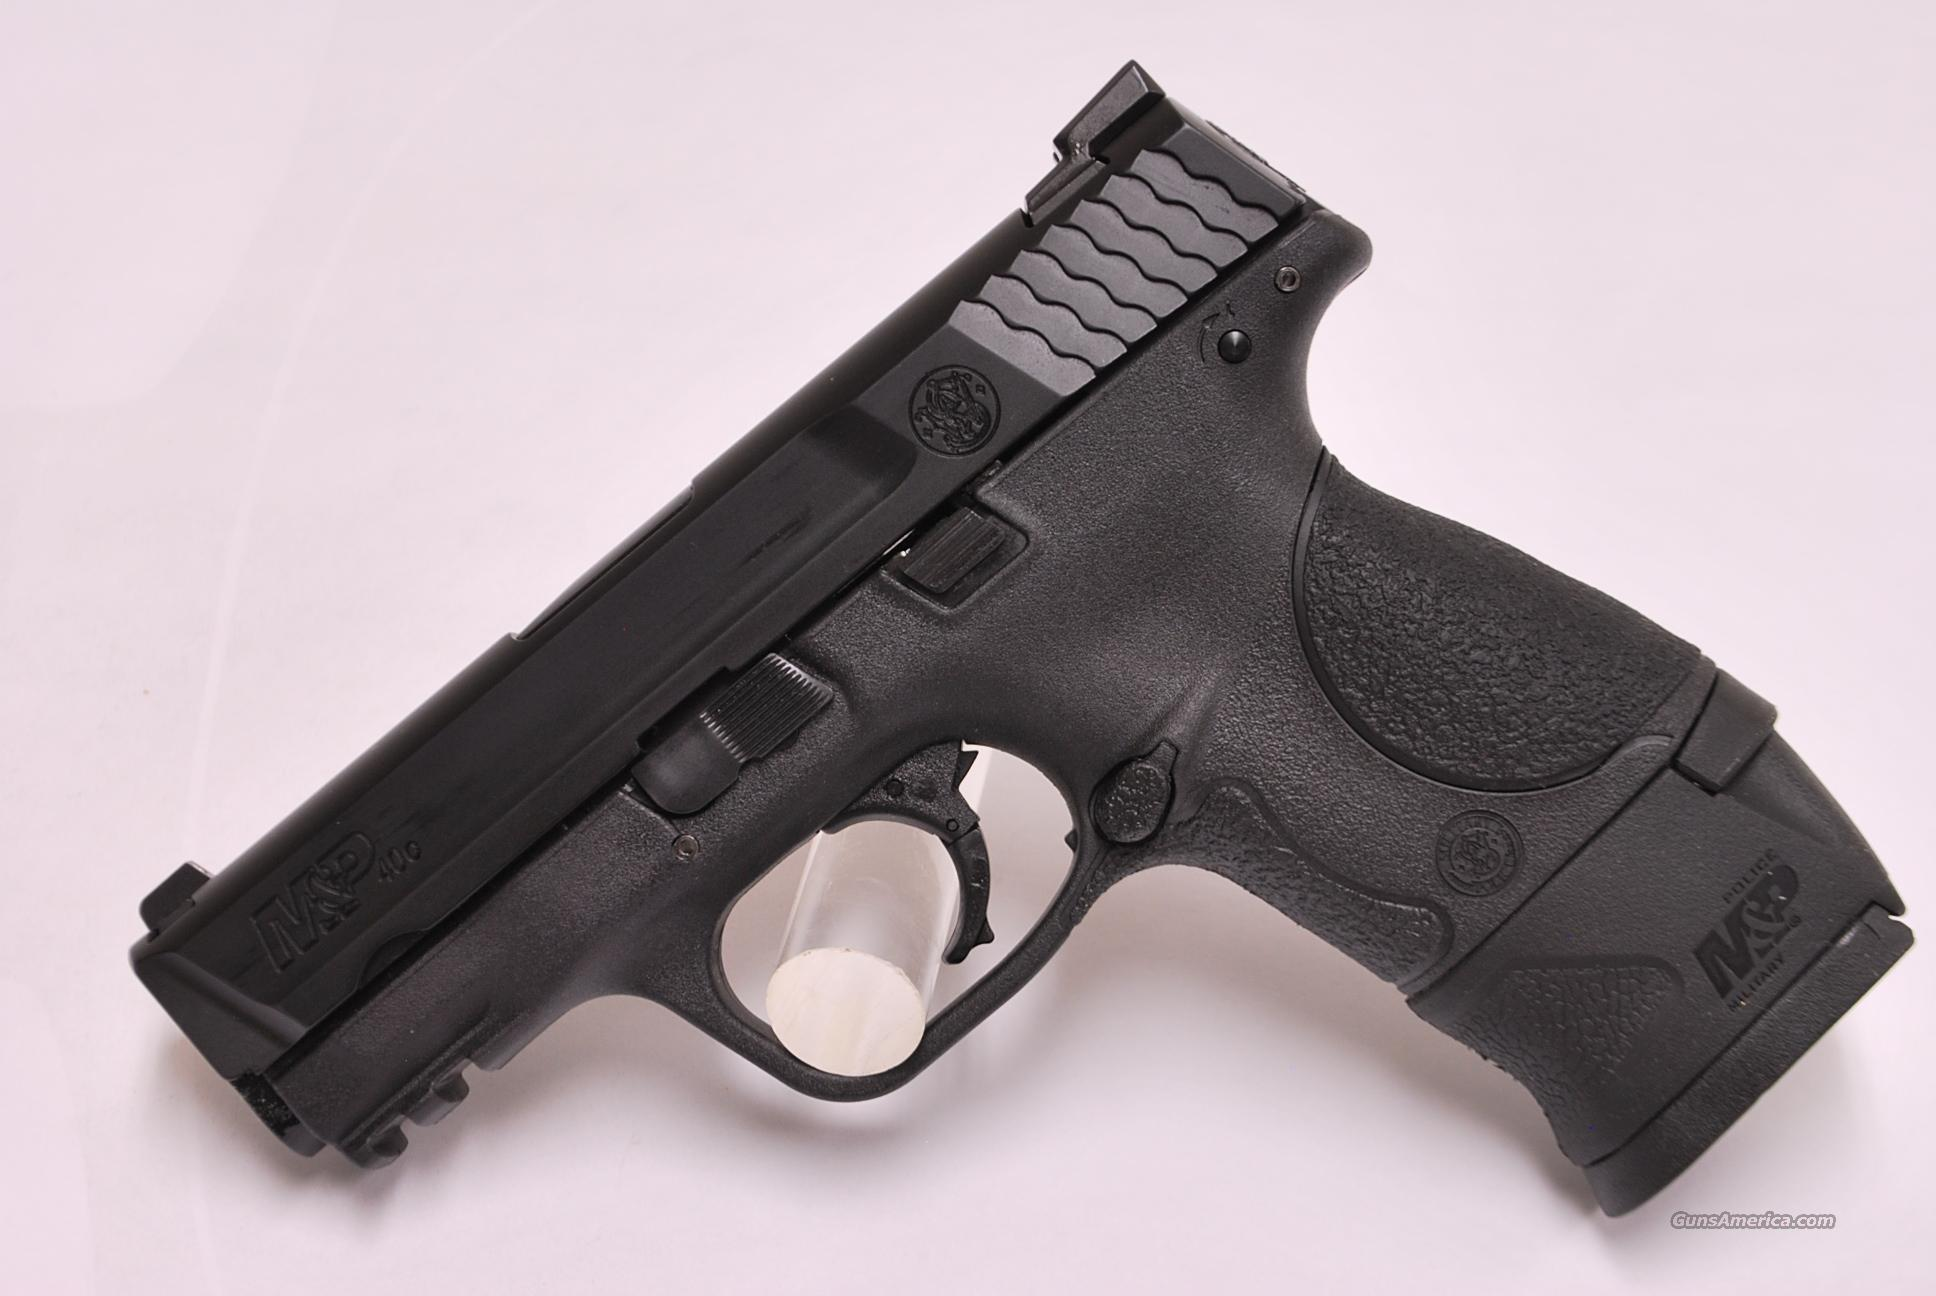 Smith & Wesson M&P 40 Compact M&P40 NEW .40  Guns > Pistols > Smith & Wesson Pistols - Autos > Polymer Frame